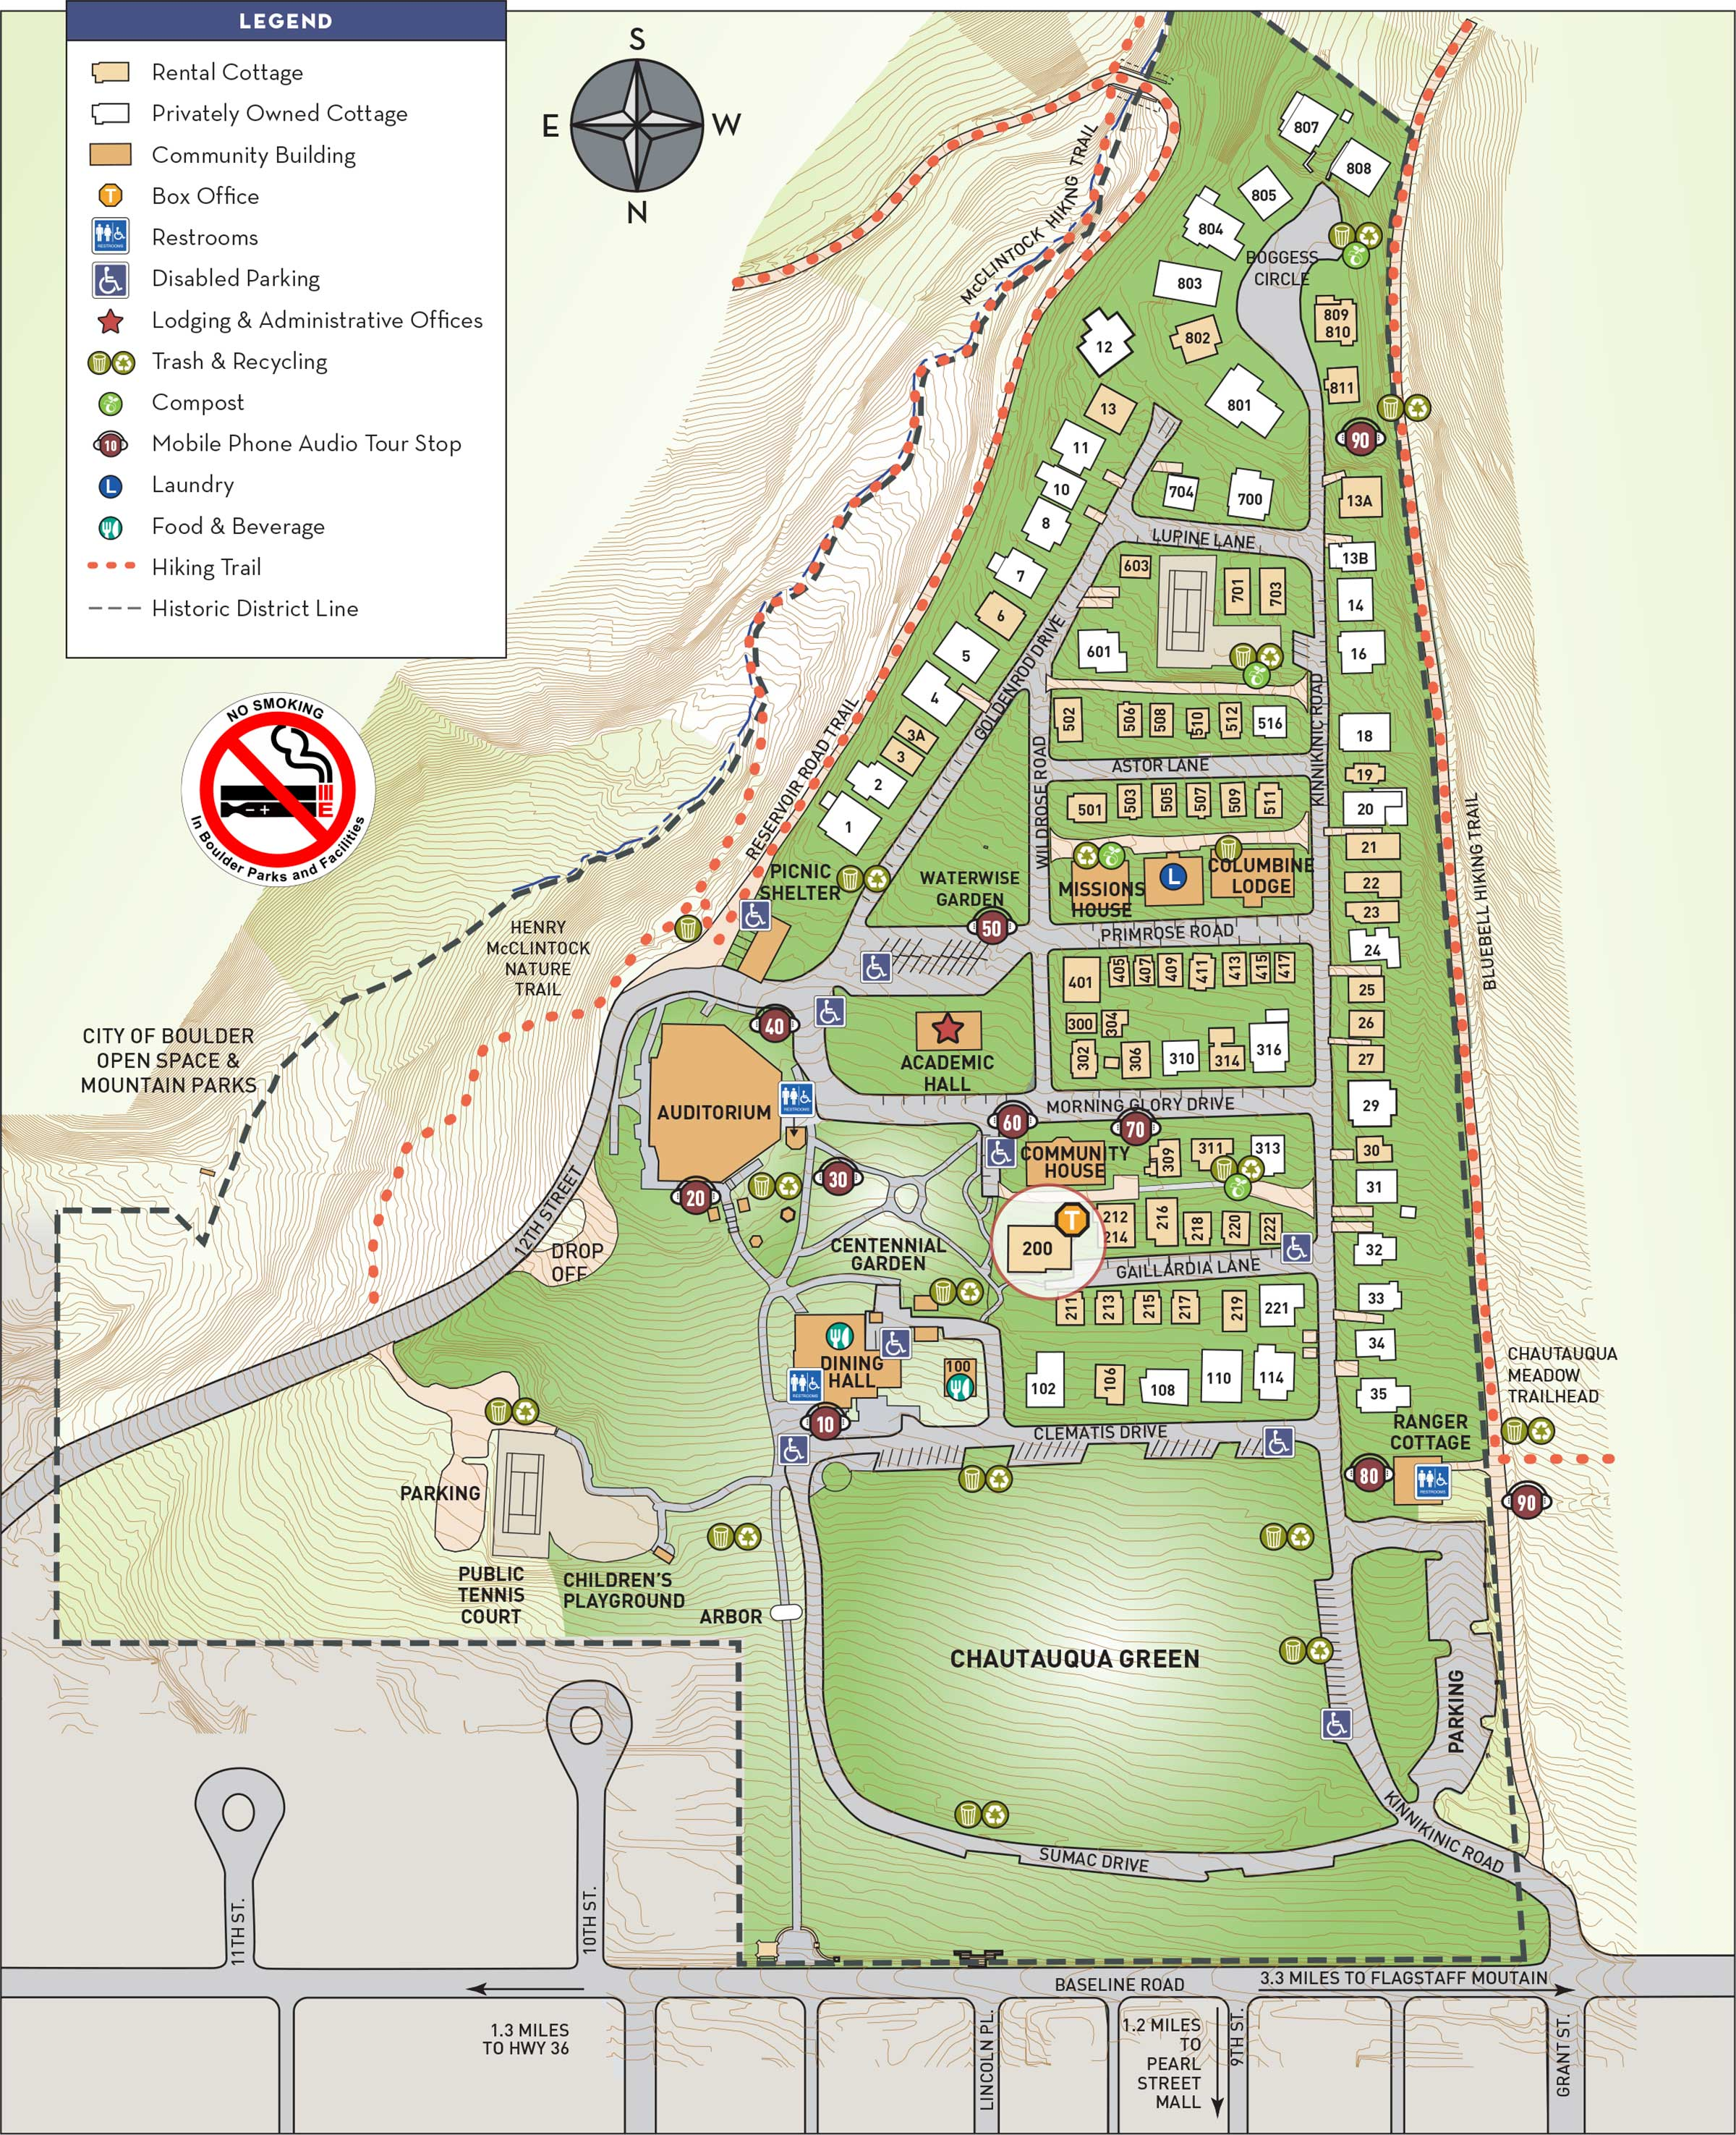 Map of Chautauqua Grounds.